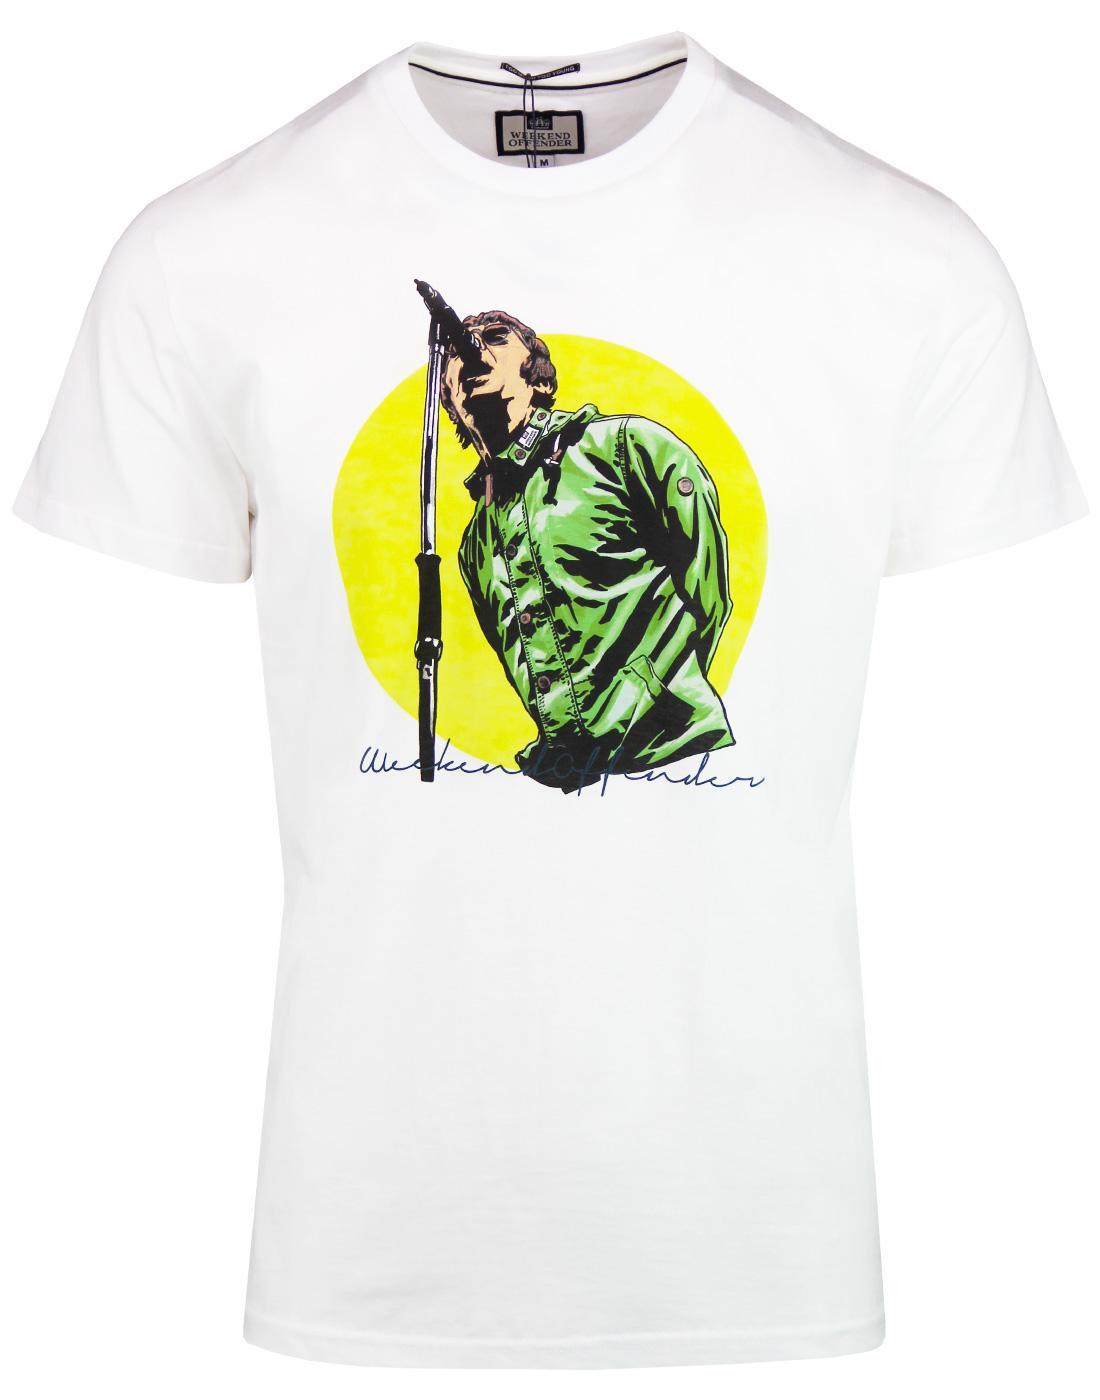 Liam WEEKEND OFFENDER Liam Gallagher 90s Tee (W)